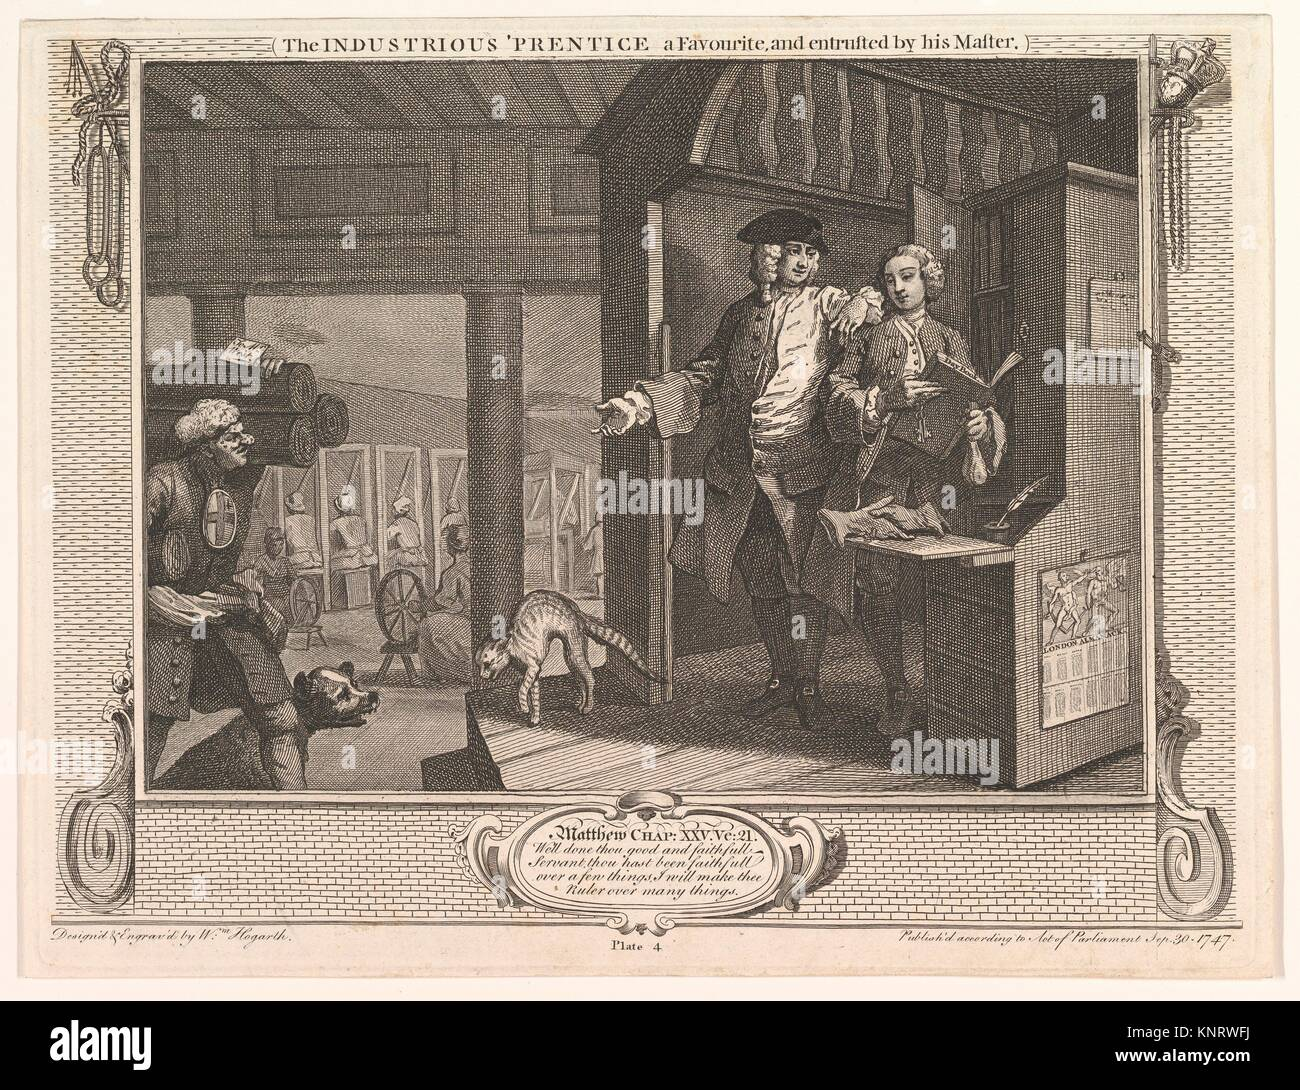 The Industrious 'Prentice a Favorite and Entrusted by his Master (Industry and Idleness, plate 4). Artist: William - Stock Image